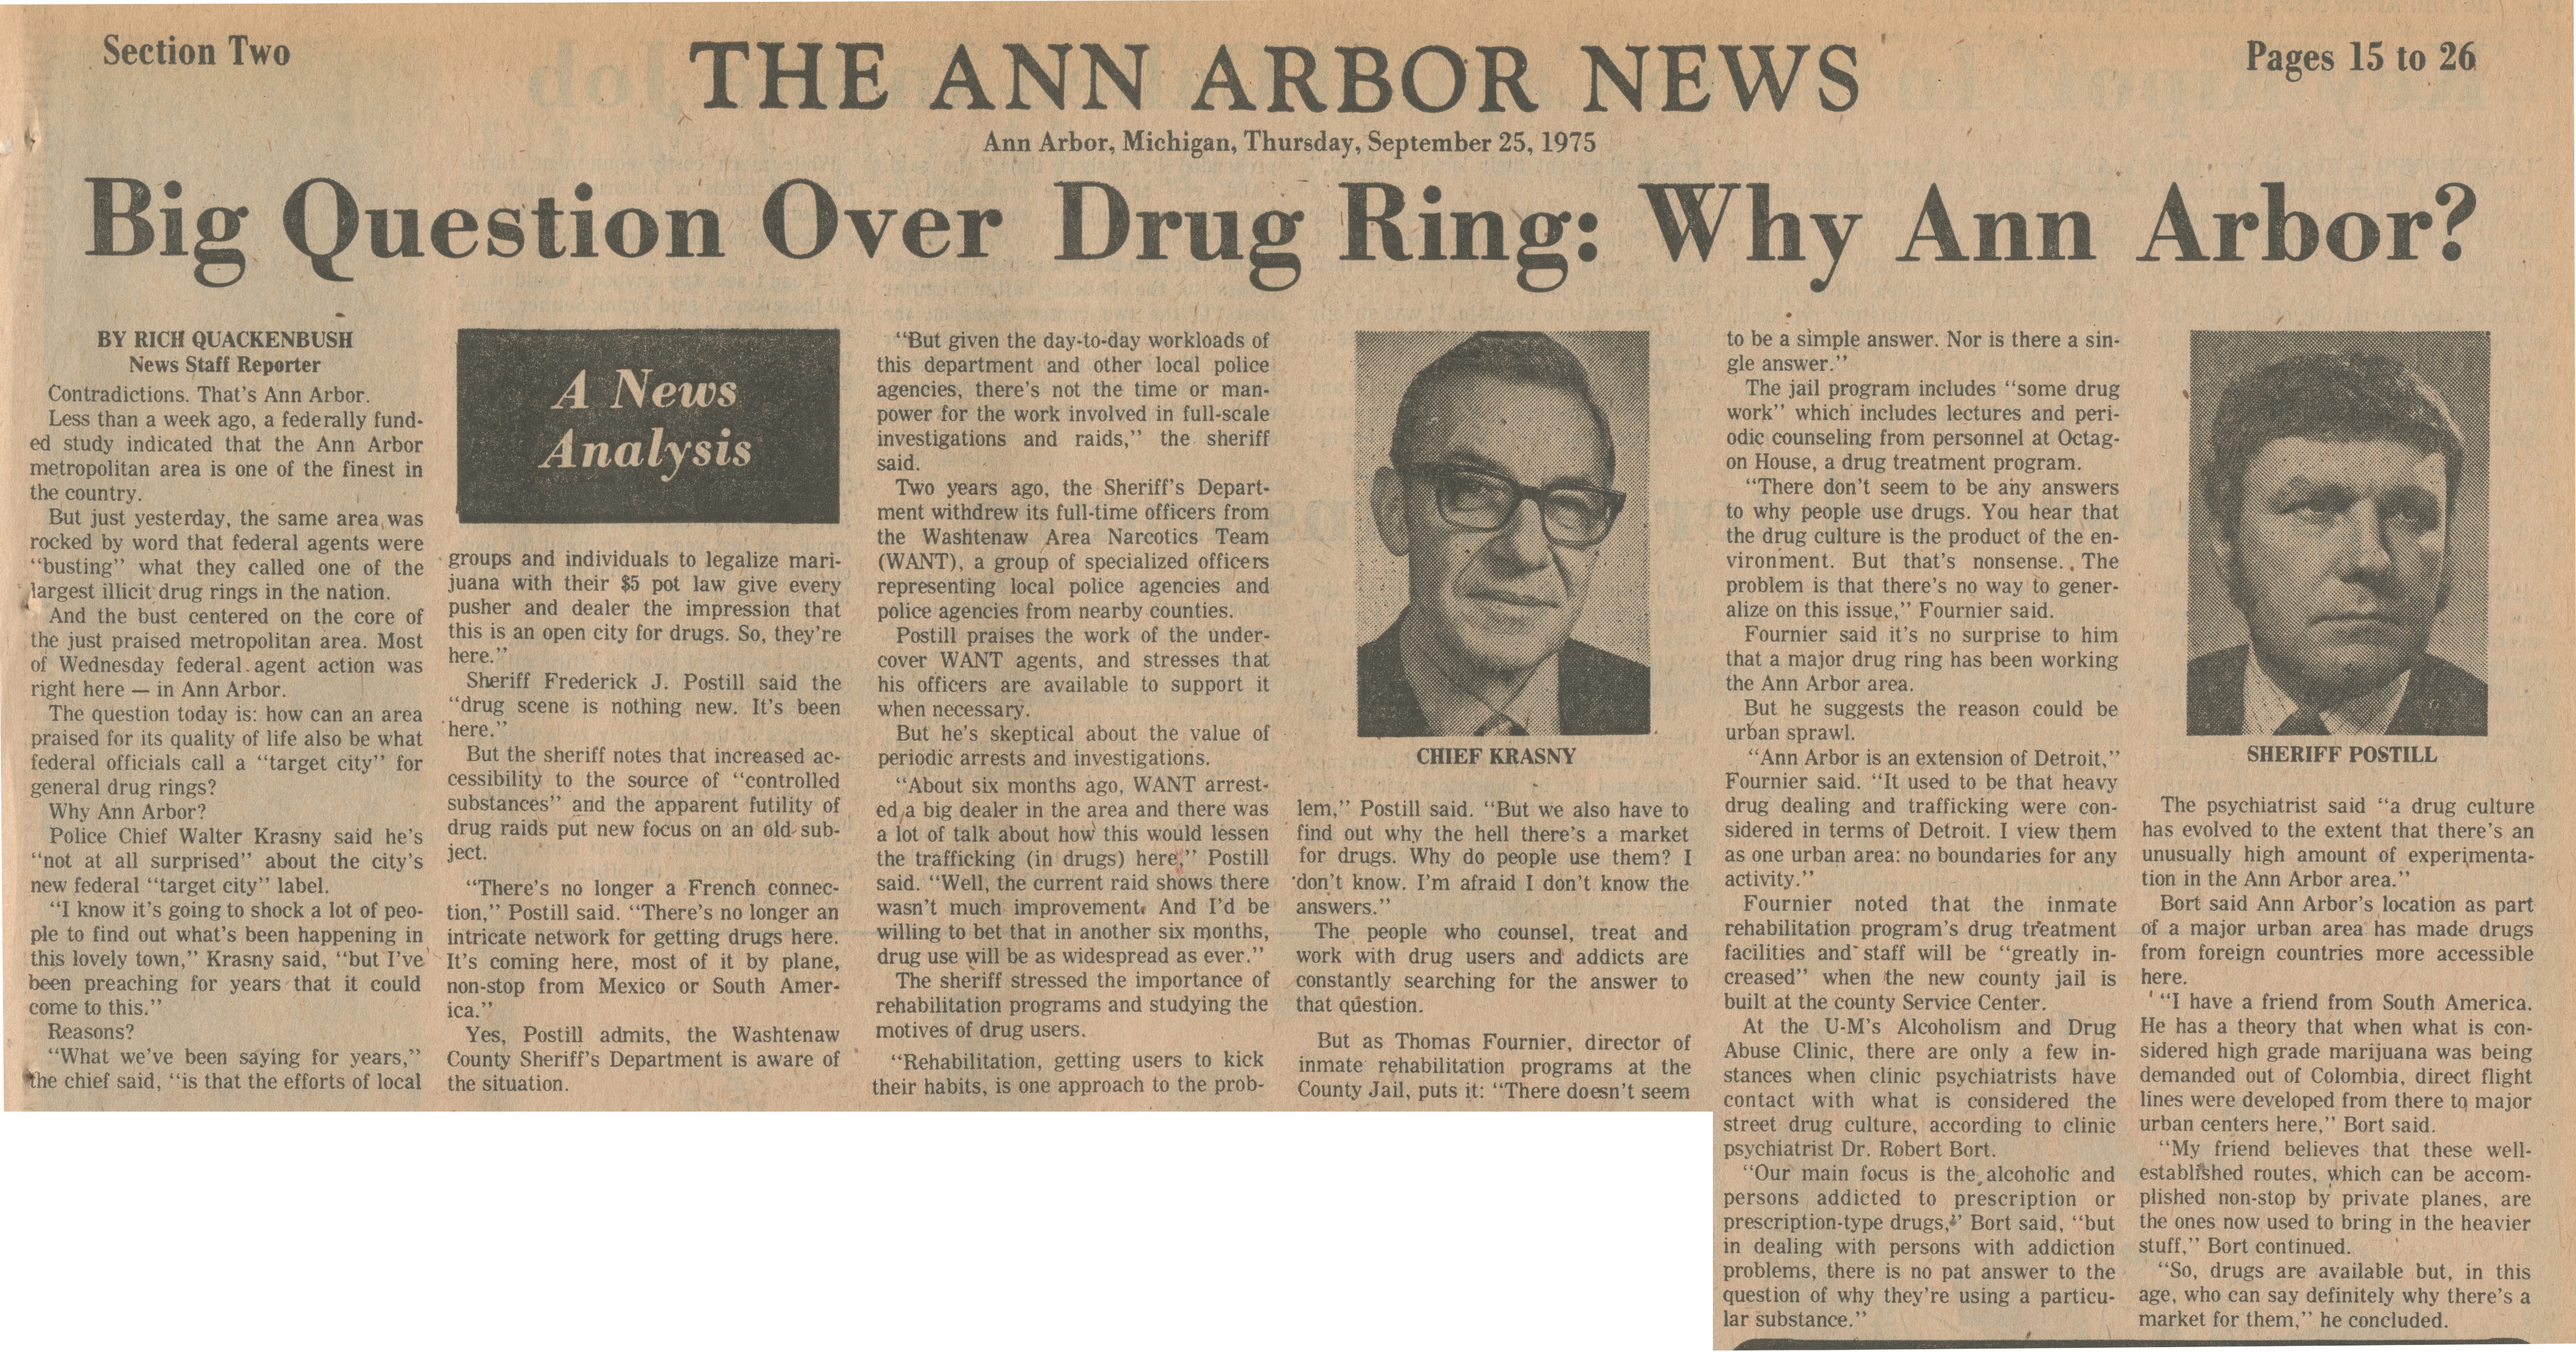 Big Question Over Drug Ring:  Why Ann Arbor? image